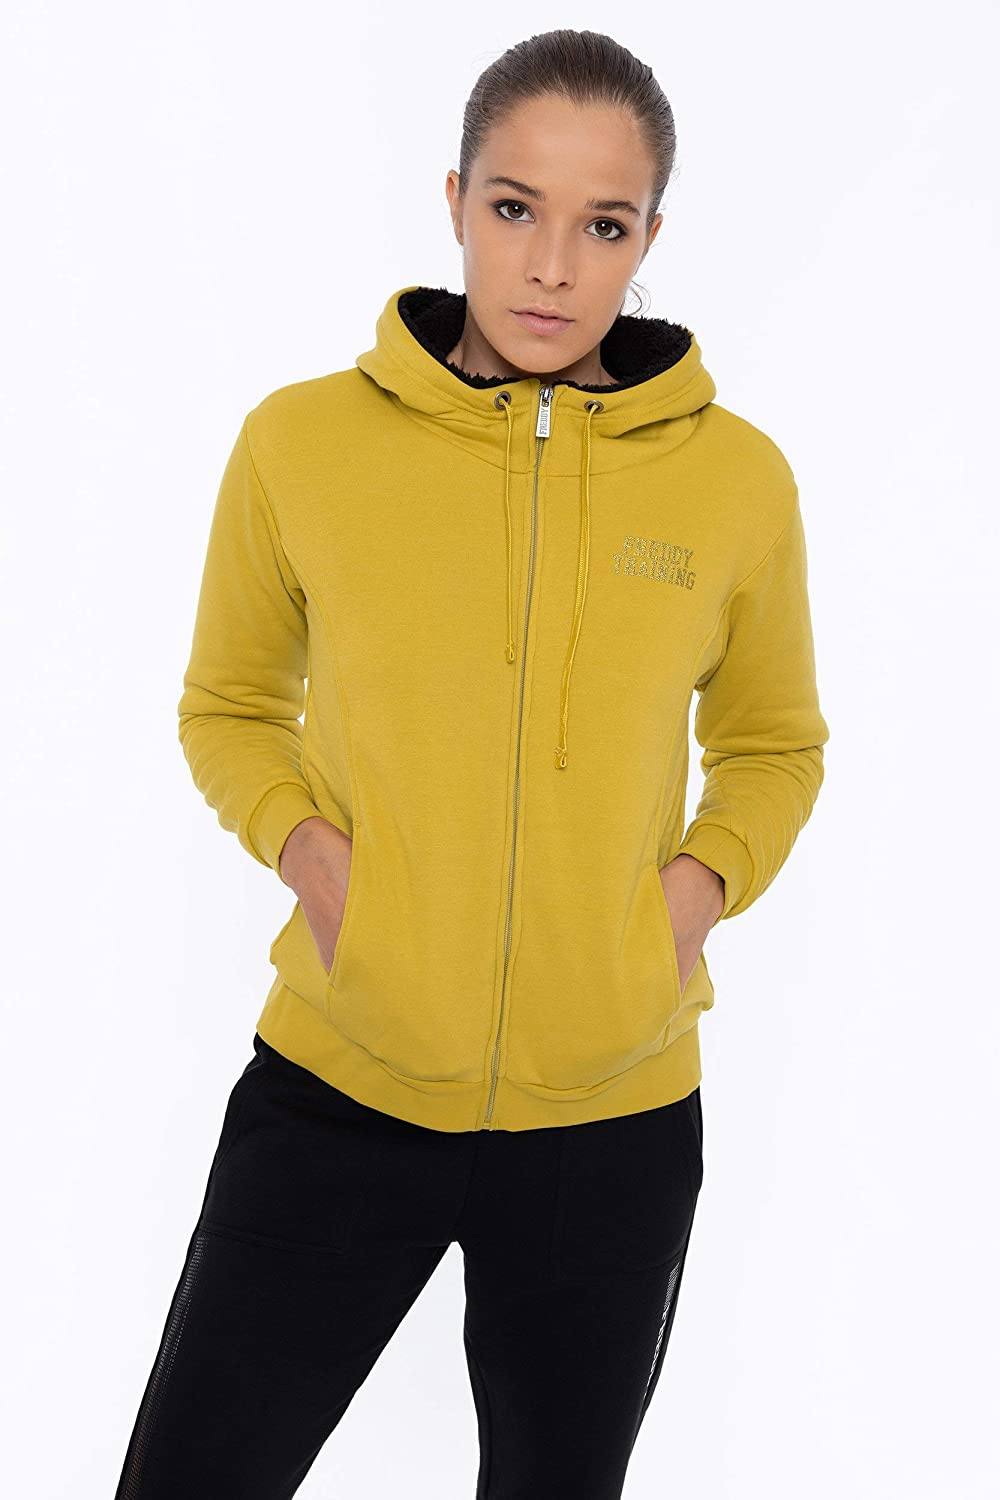 FREDDY Sweat-Shirt à Capuche orné de Mini-Clous métalliques Jaune